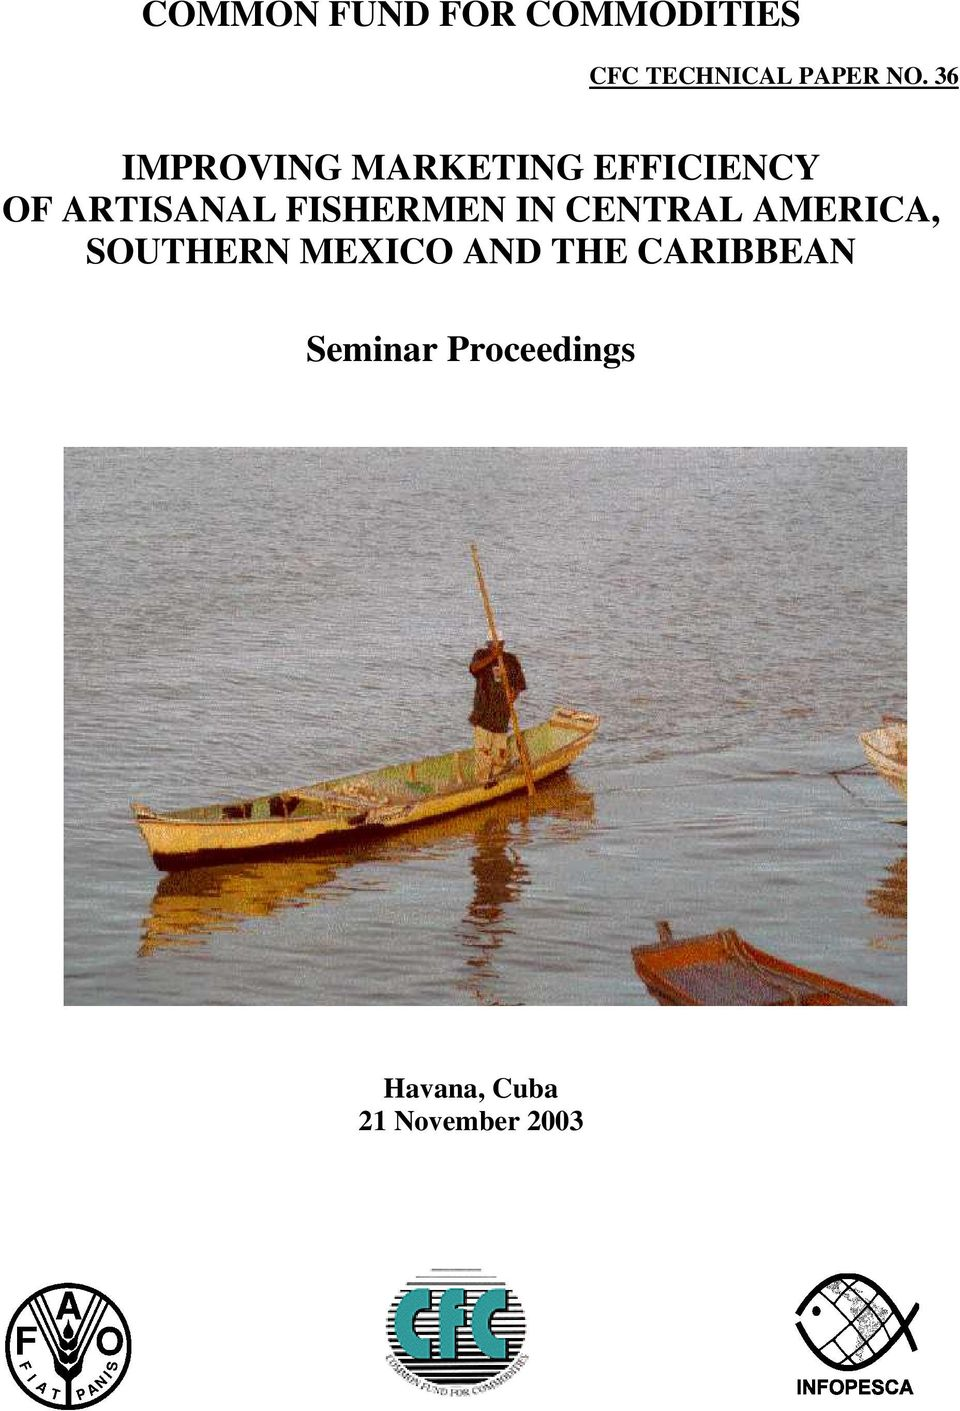 FISHERMEN IN CENTRAL AMERICA, SOUTHERN MEXICO AND